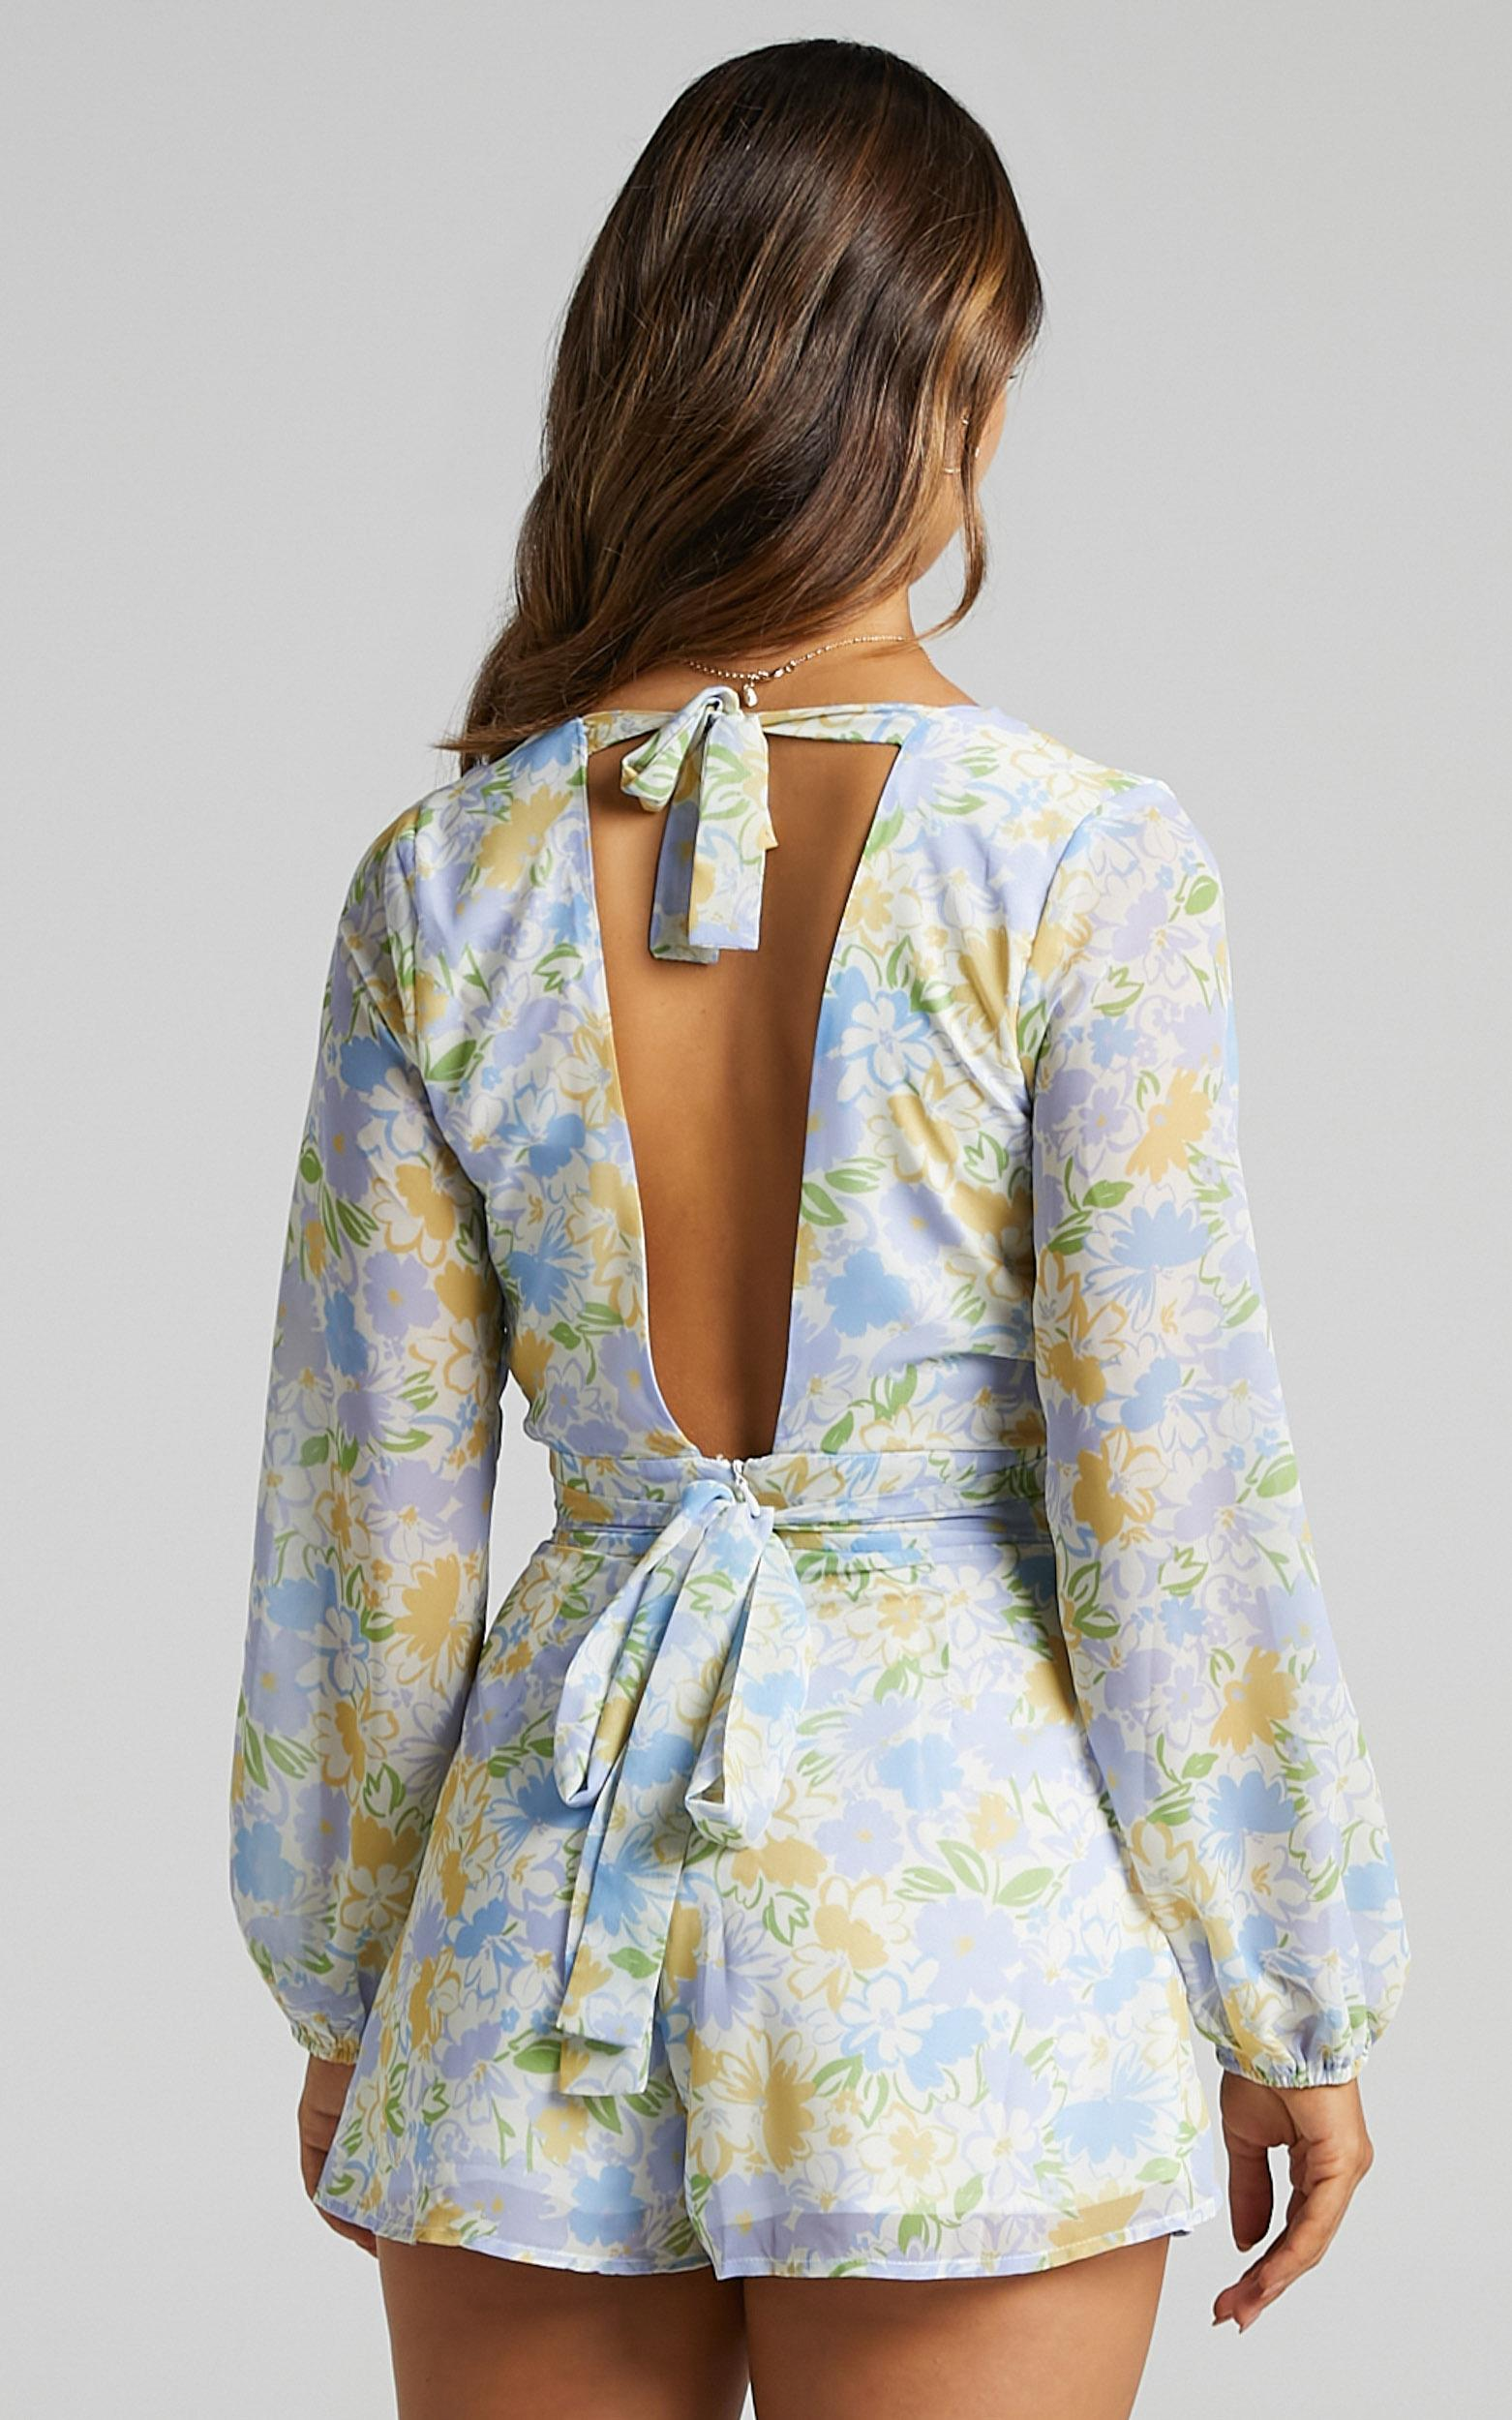 Wheels Bouncing Playsuit in Summer Petals - 4 (XXS), Multi, hi-res image number null